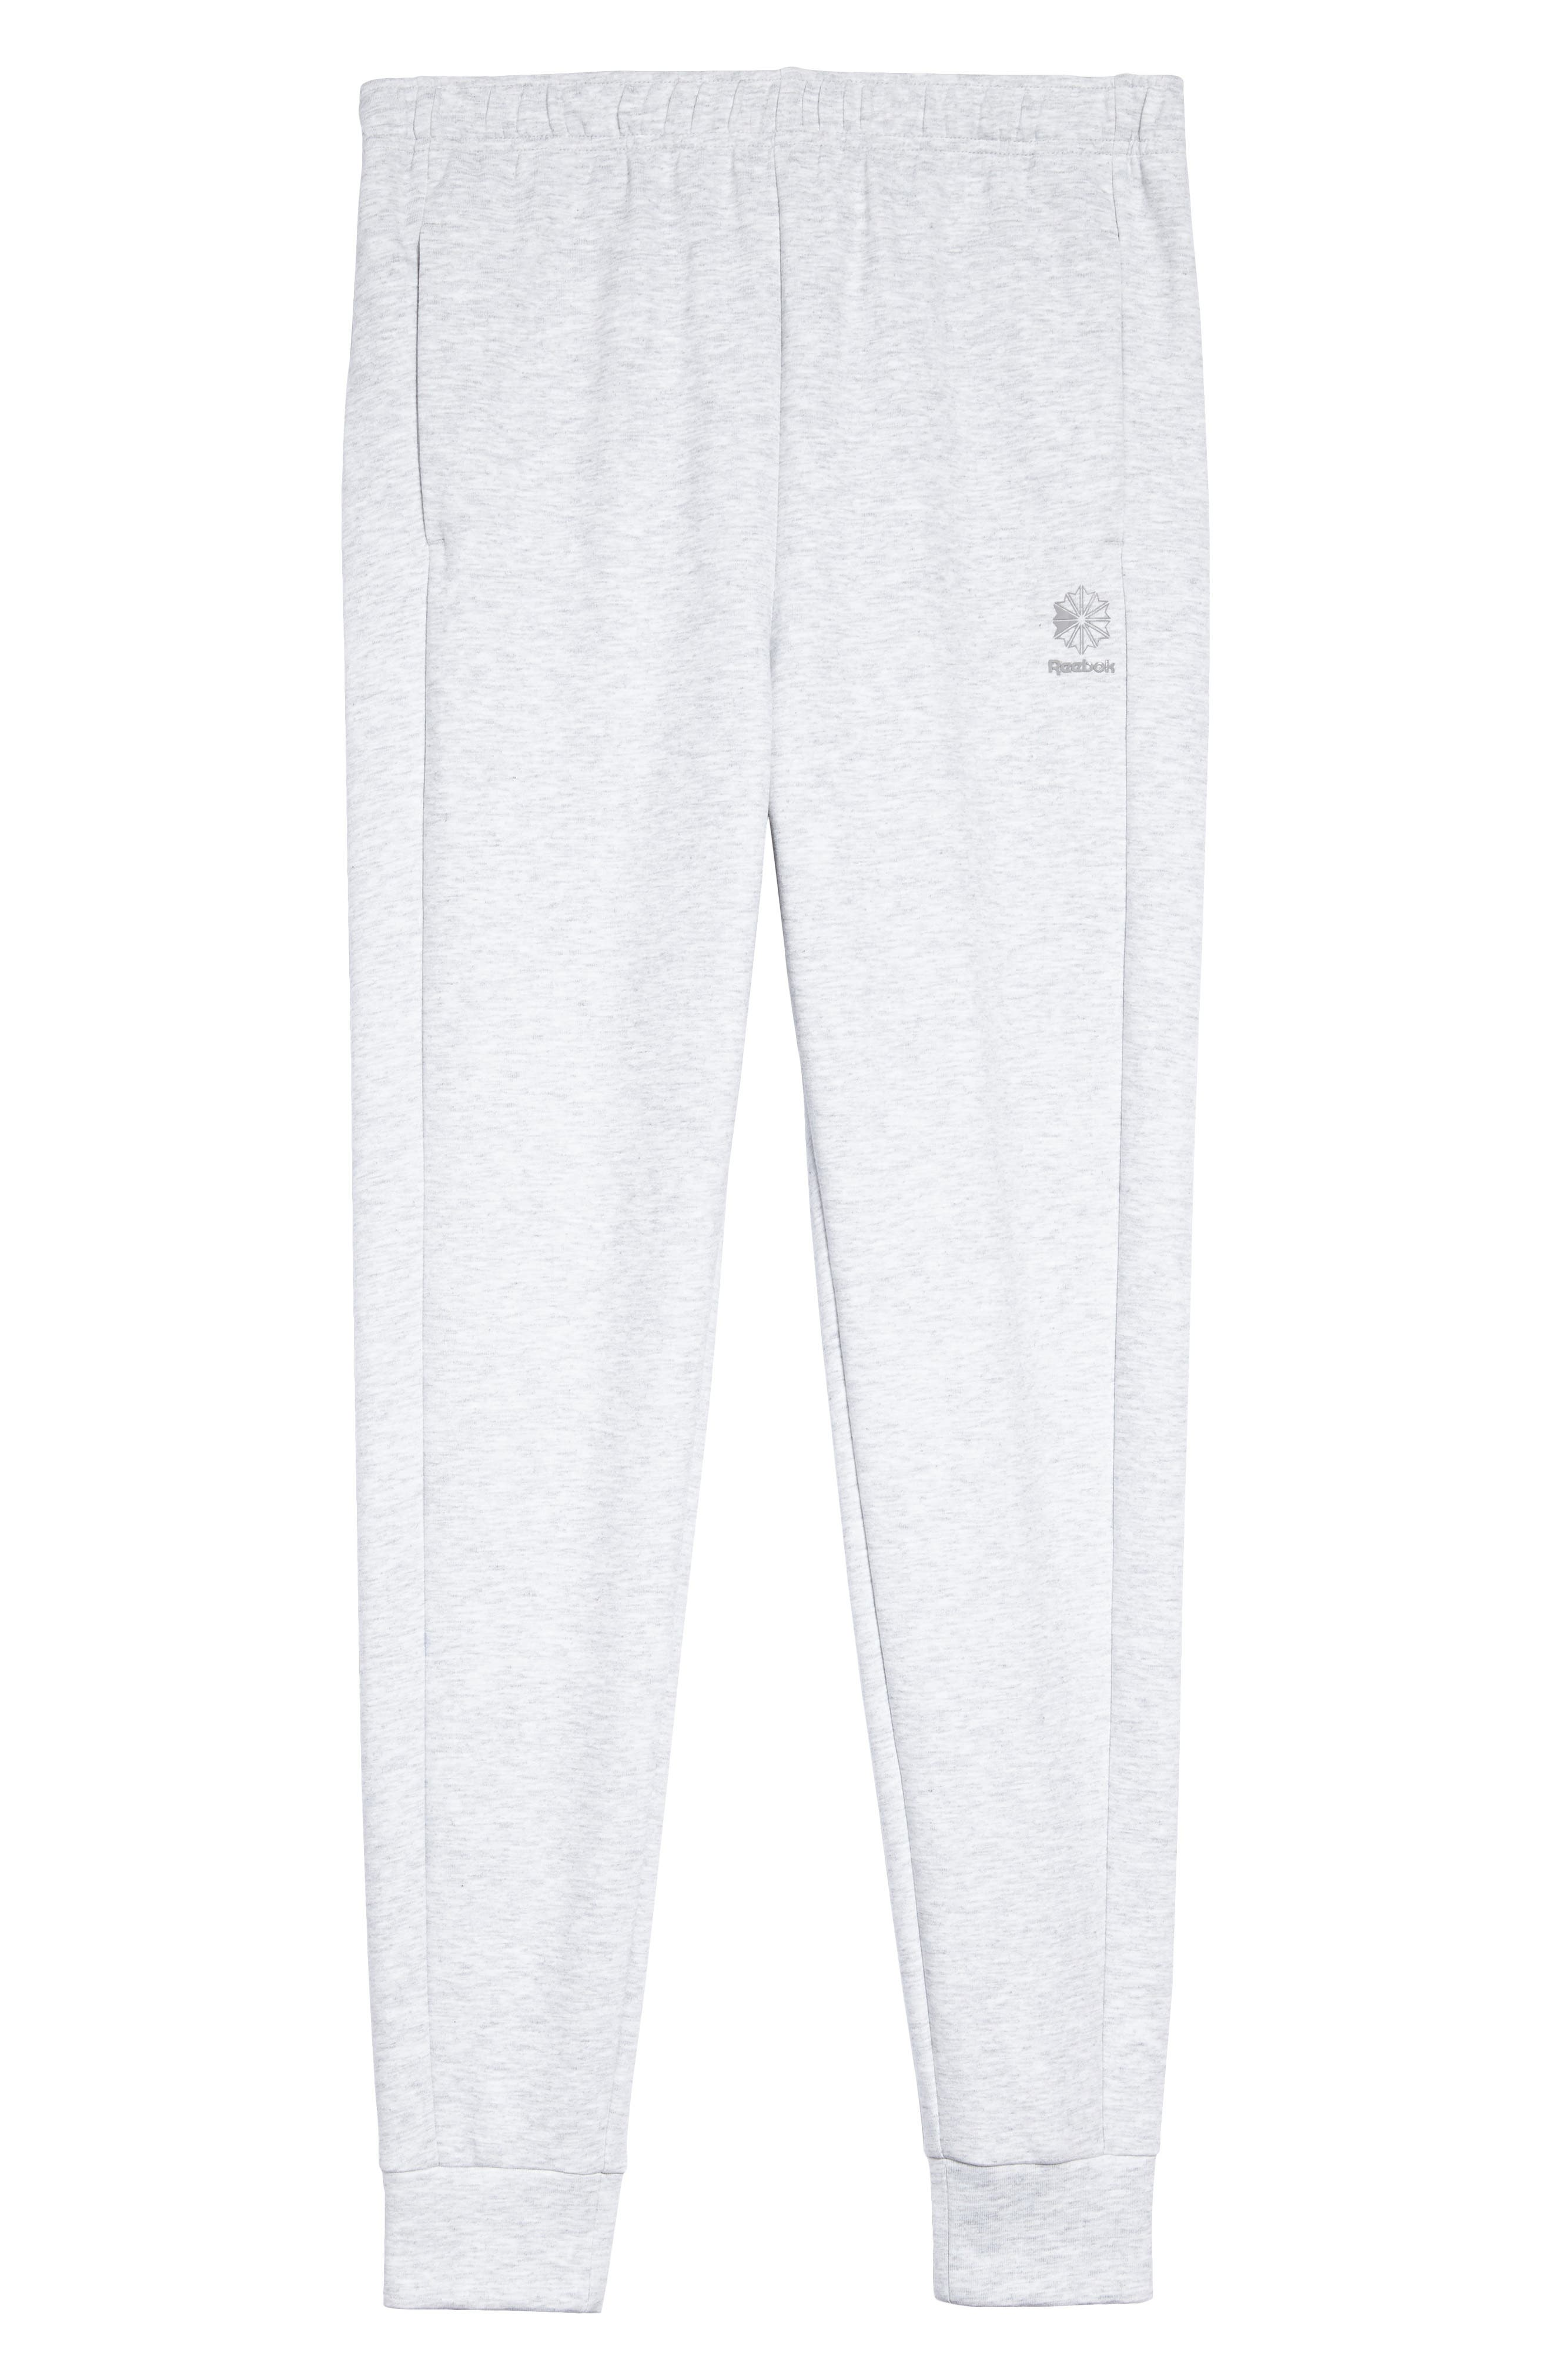 Classic Dynamic Knit Jogger Pants,                             Alternate thumbnail 6, color,                             Light Grey Heather